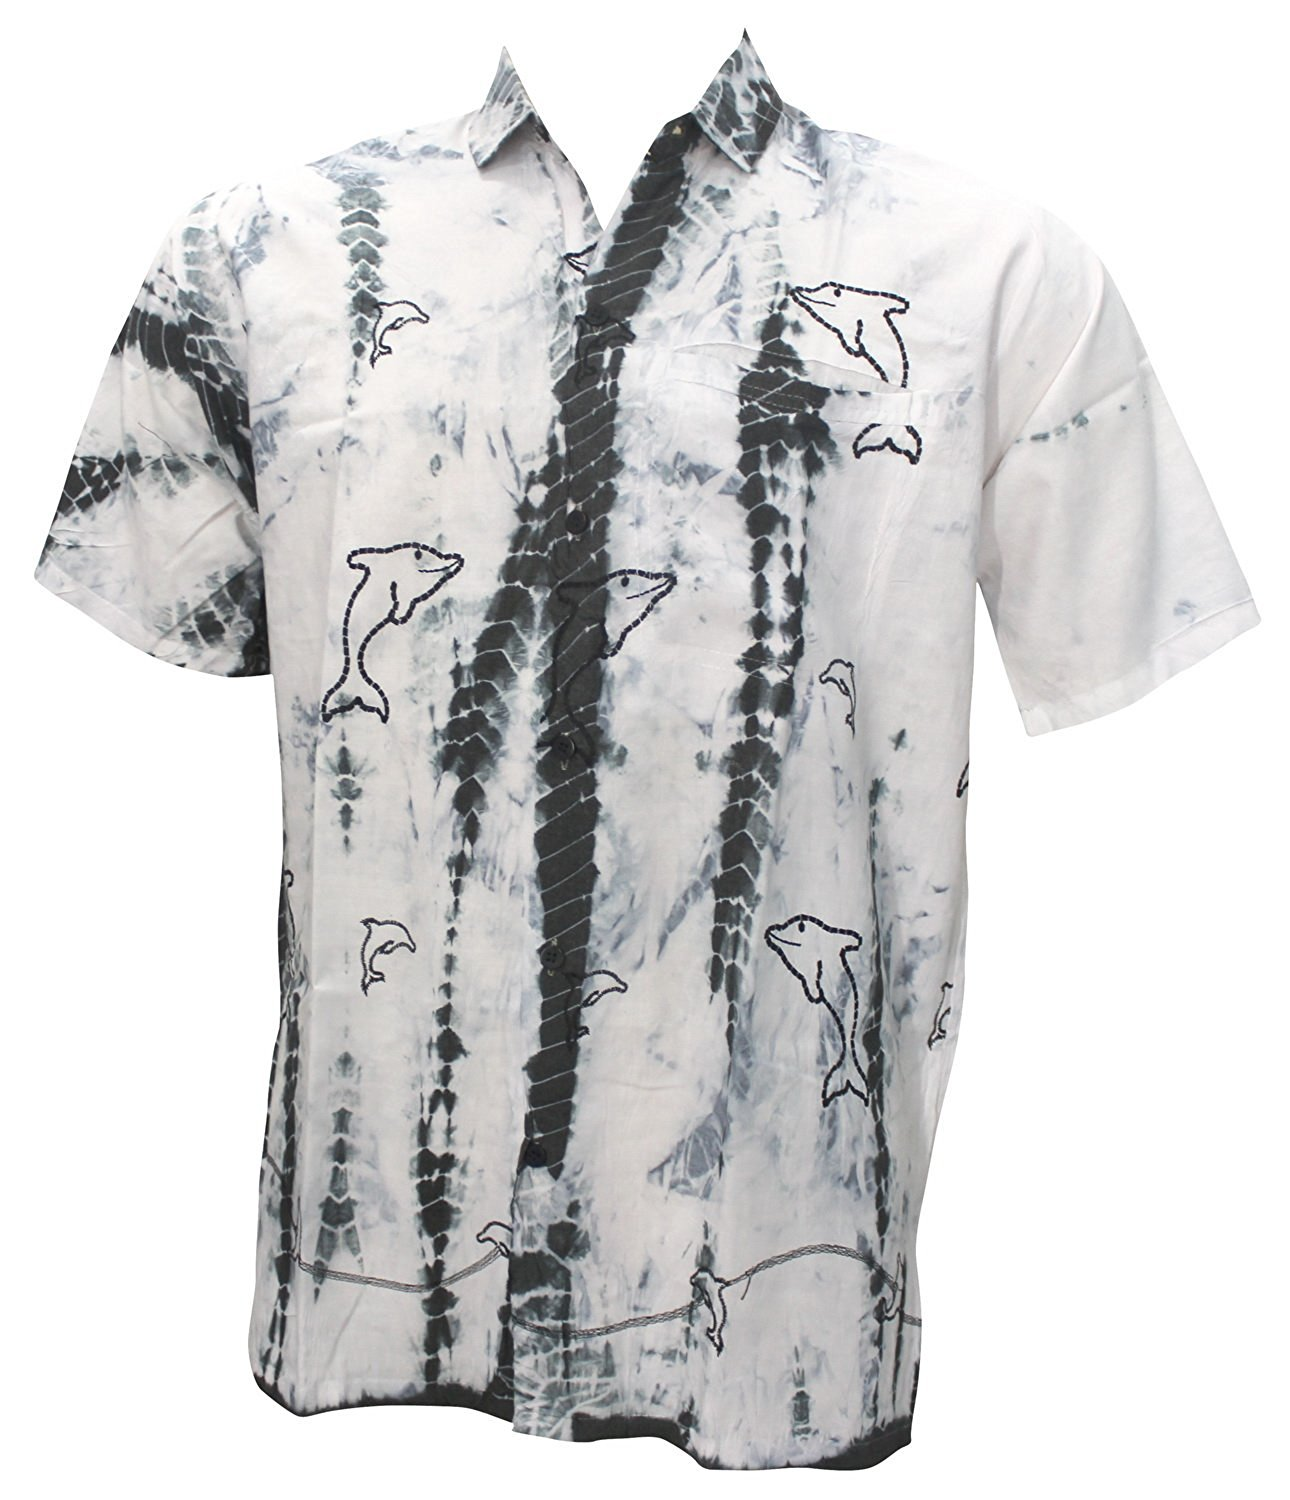 6c474690 La Leela Aloha Hawaiian Tropical BEACH Solid plain Mens Casual Short  Sleeves Button Down Tropical Shirts M White